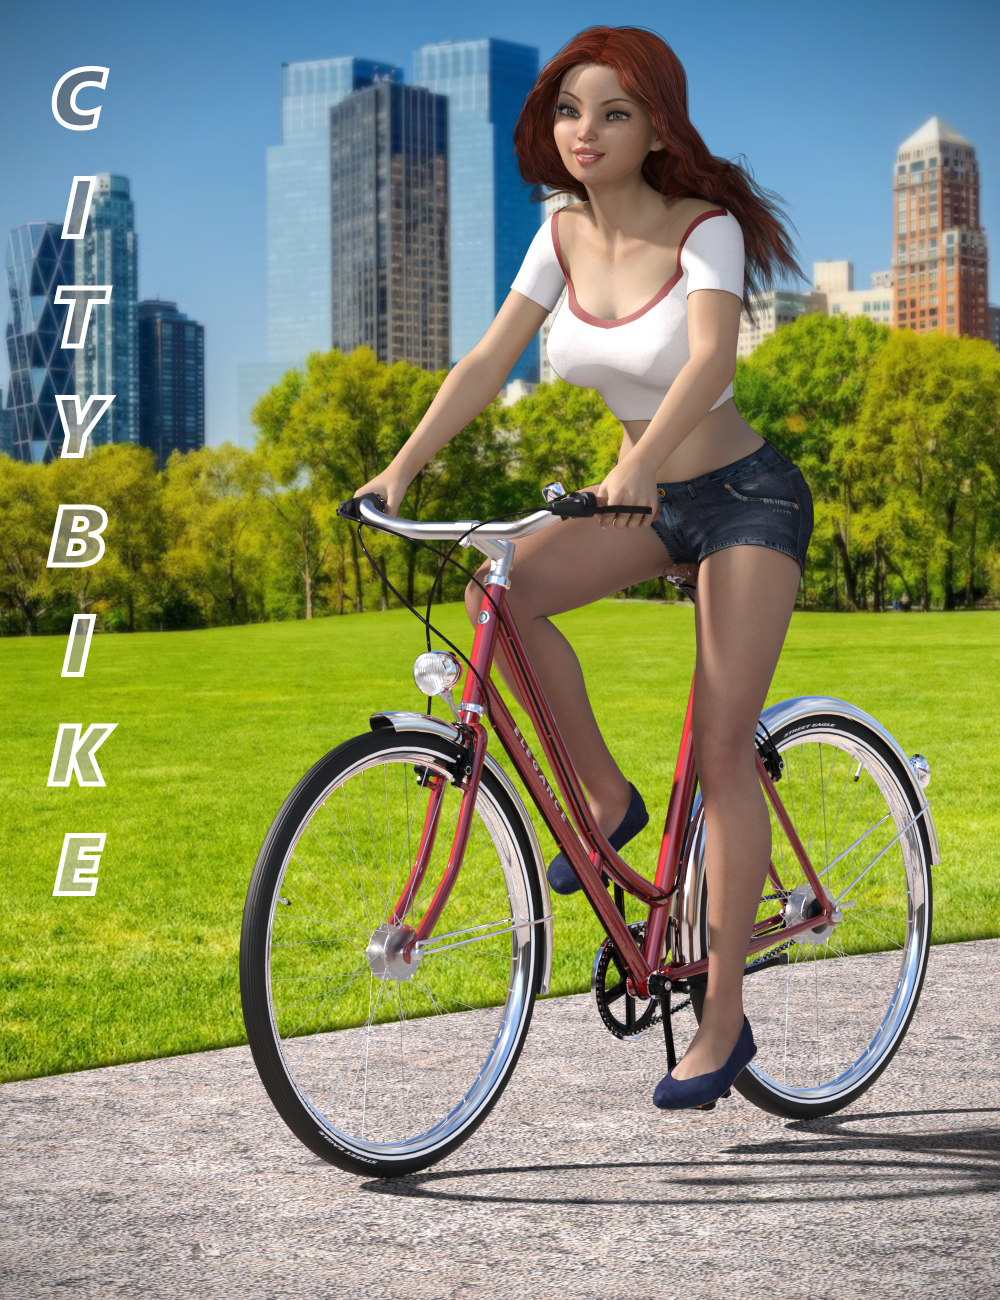 City Bike and Poses by: Eagle99, 3D Models by Daz 3D